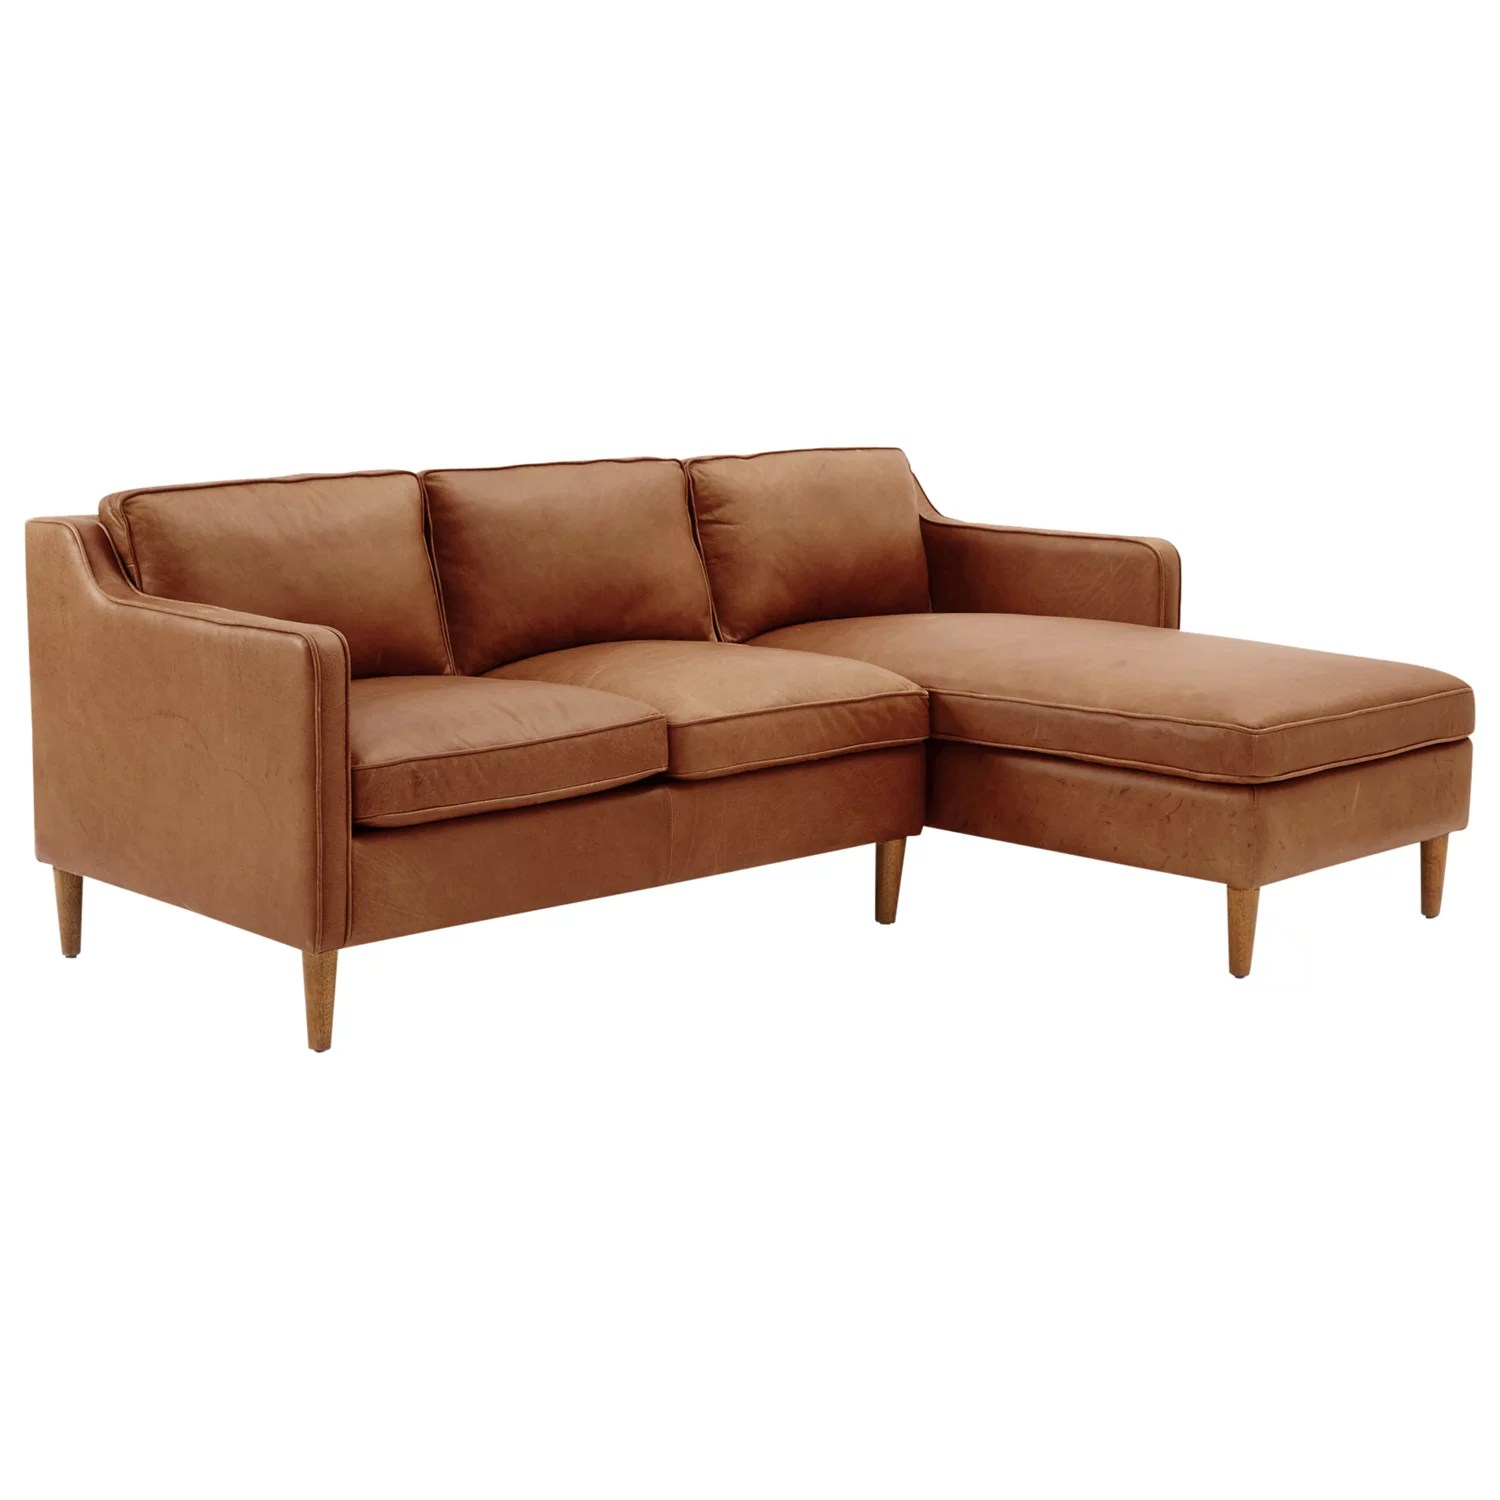 west elm hamilton leather sofa tan hide a beds sectional left loveseat octer